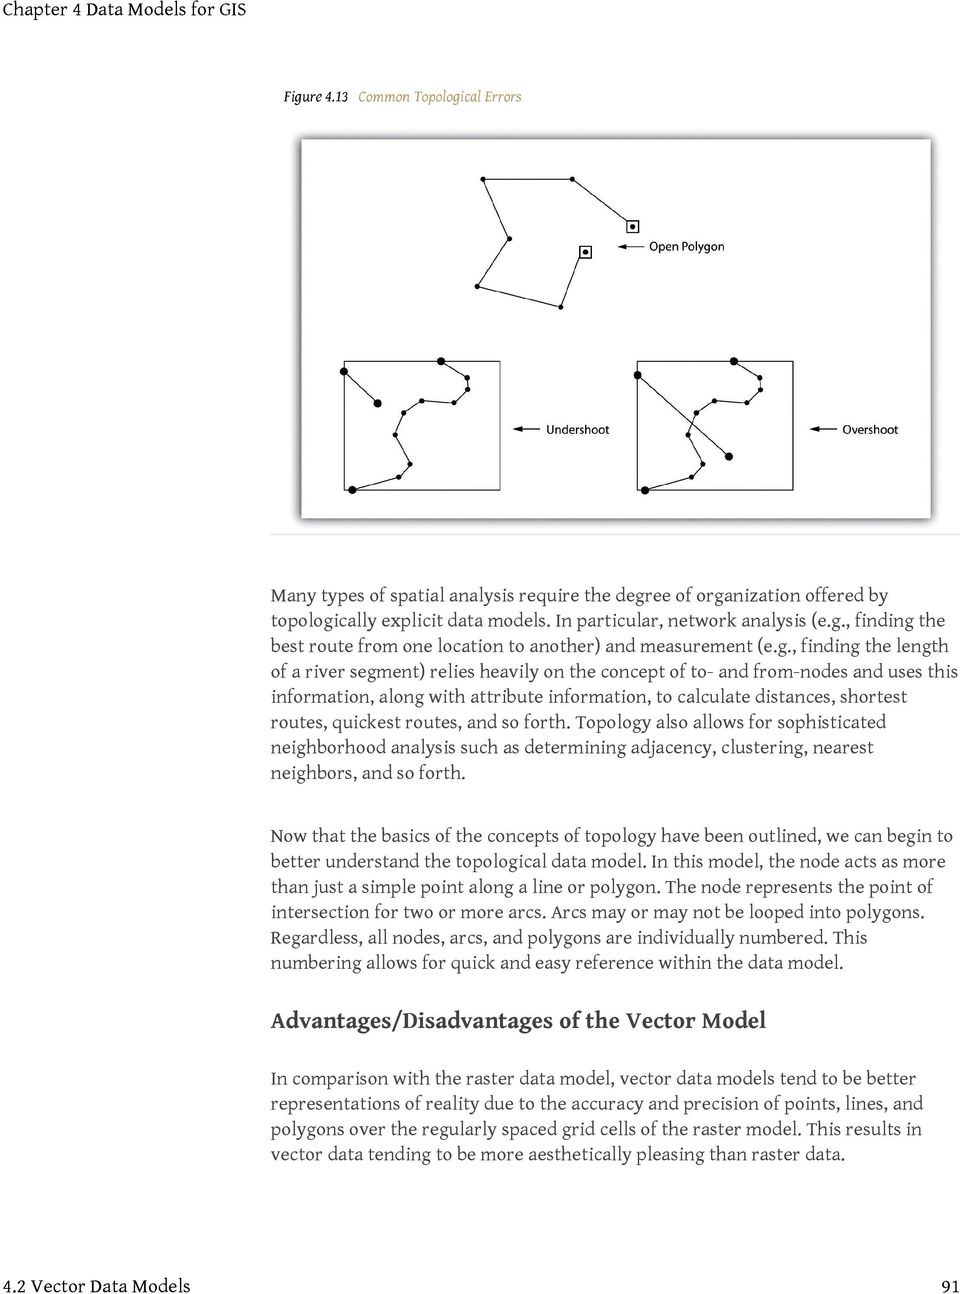 This is Data Models for GIS, chapter 4 from the book Geographic